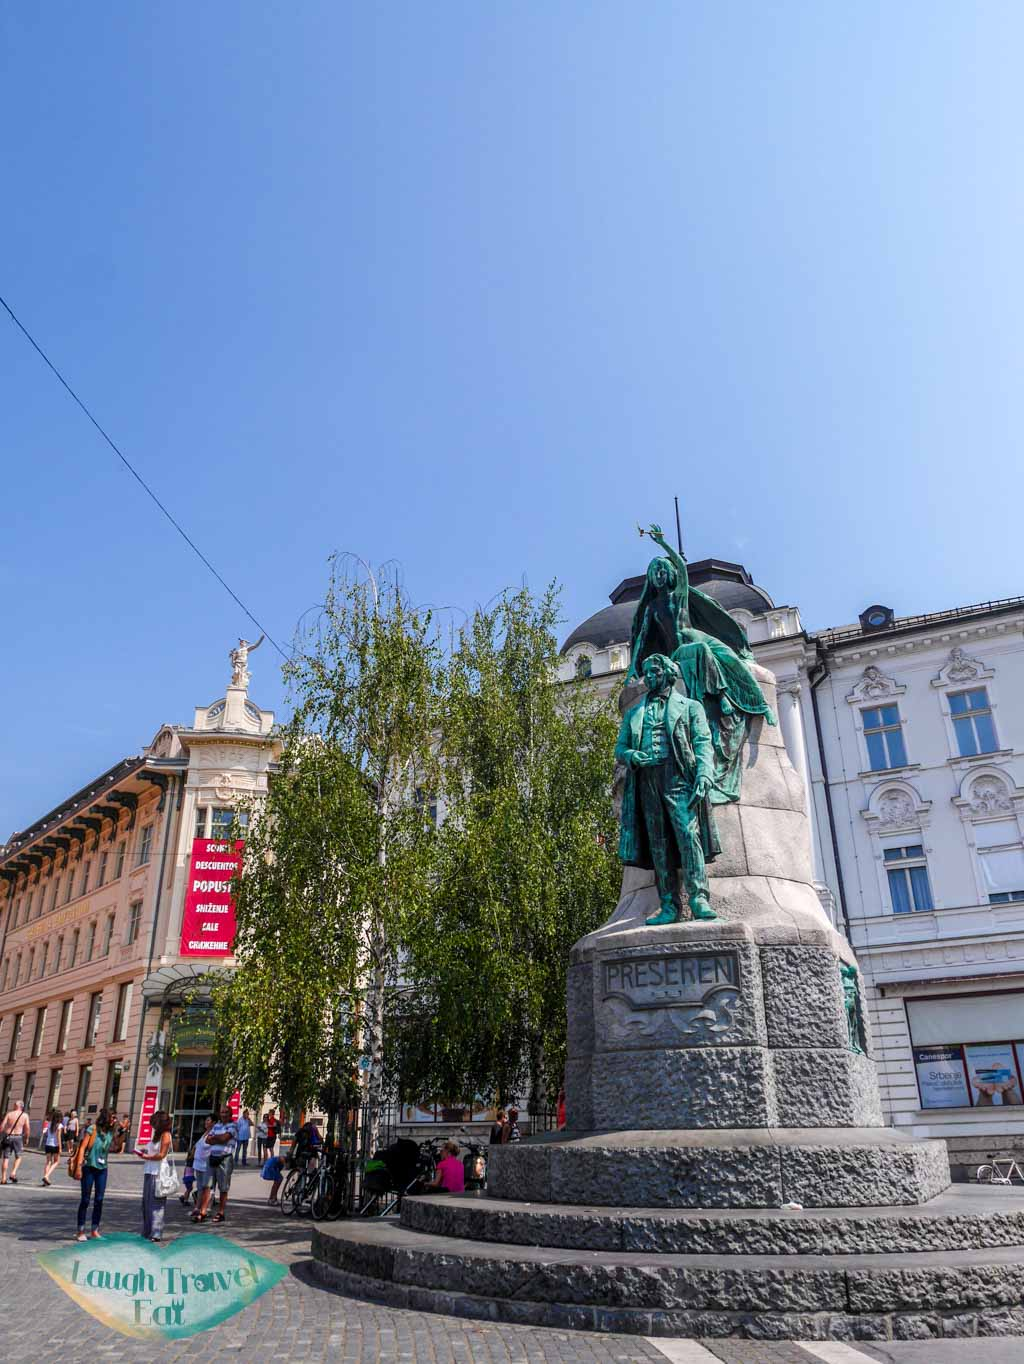 Preseren-Square-Ljubljana-Slovenia-laugh-travel-eat